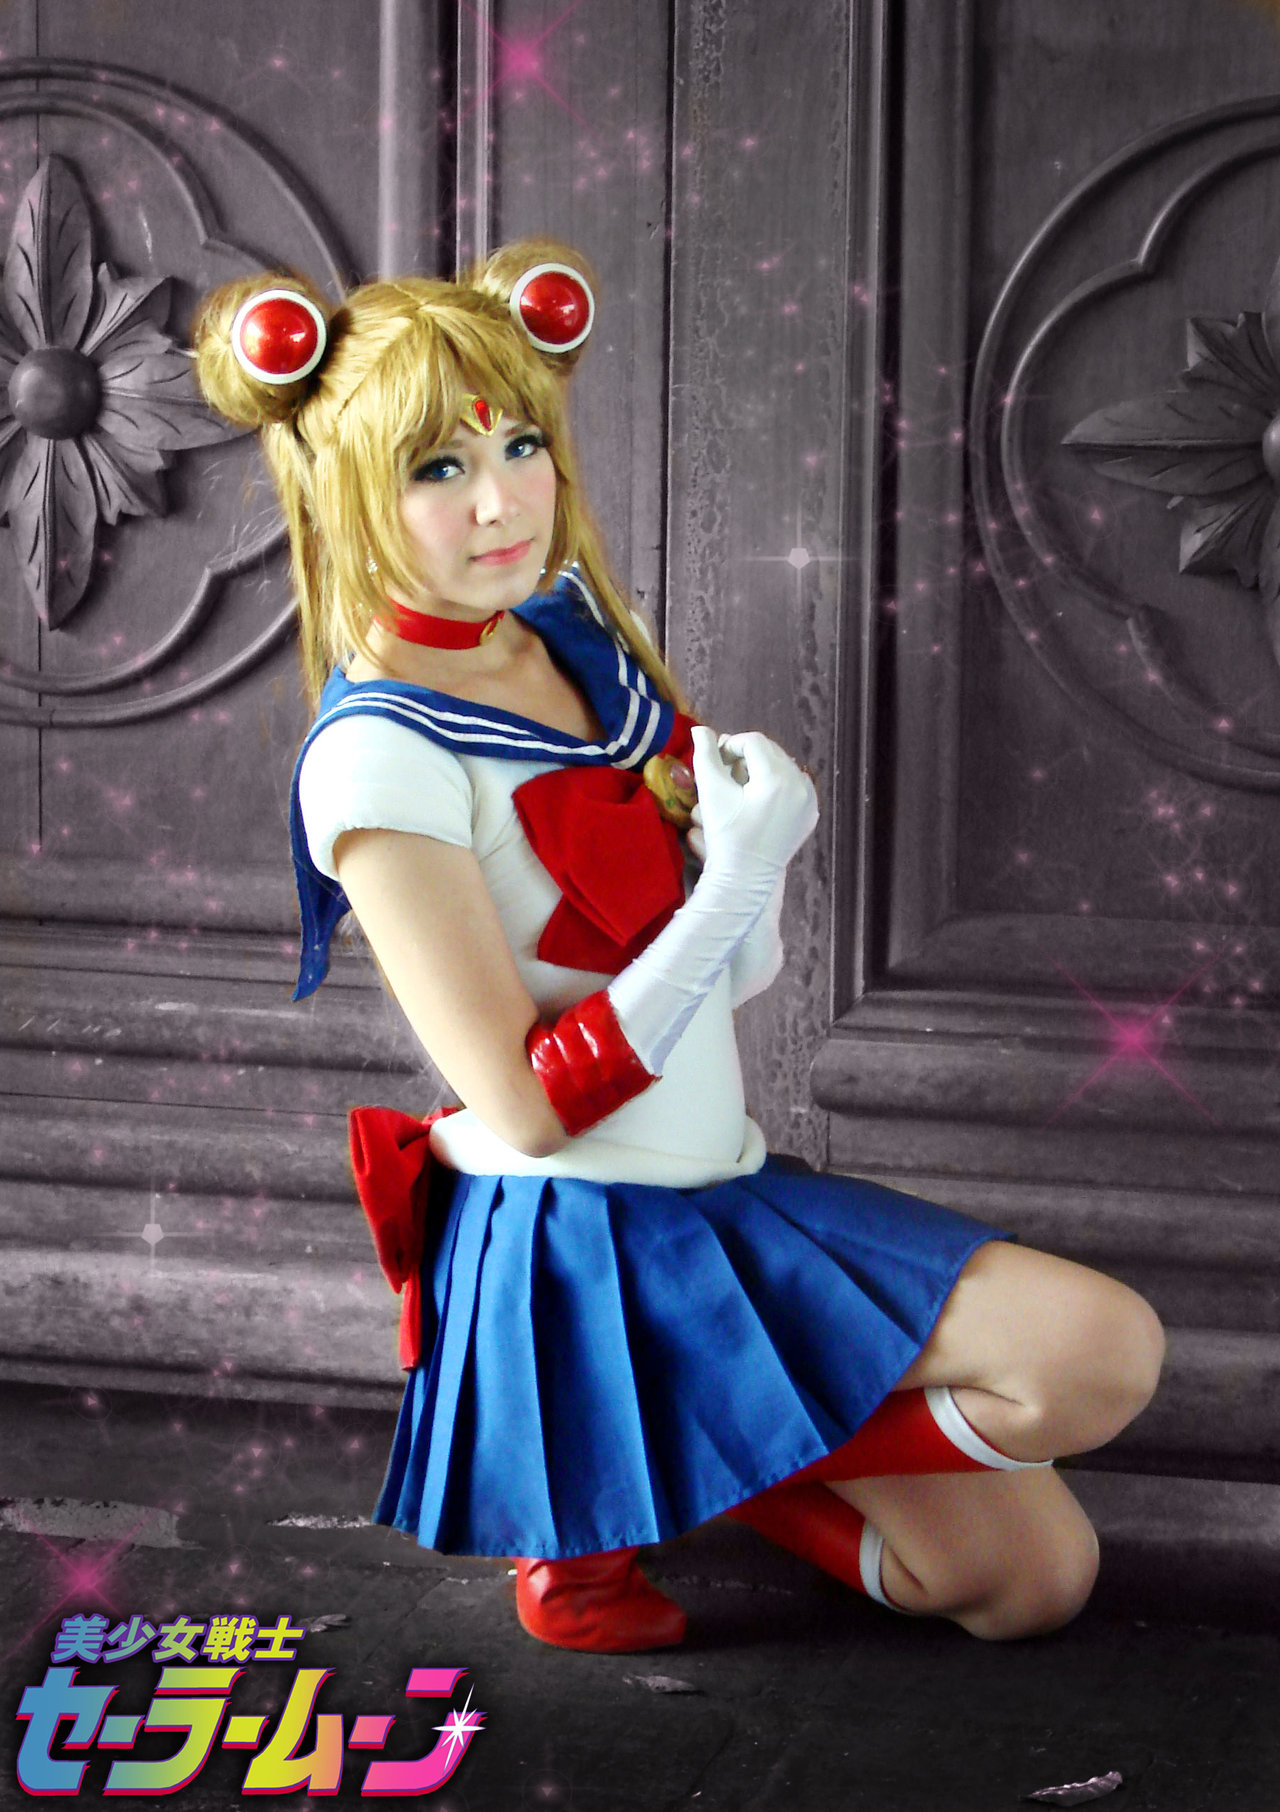 sailor_moon_cosplay___moon_soldier_by_sailormappy-d4s2a88